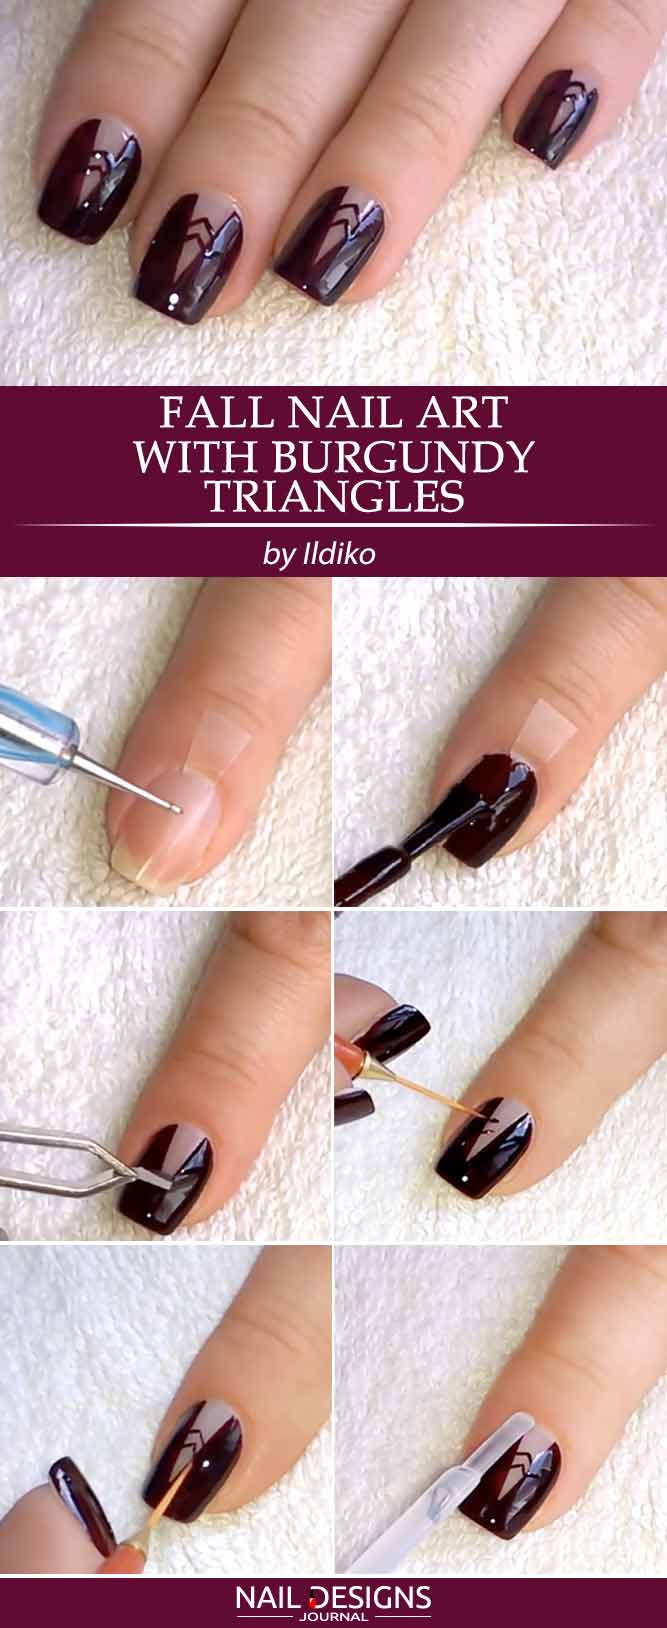 3 Superb Burgundy Nail Designs for Fall You Need to Try – FlawlessEnd